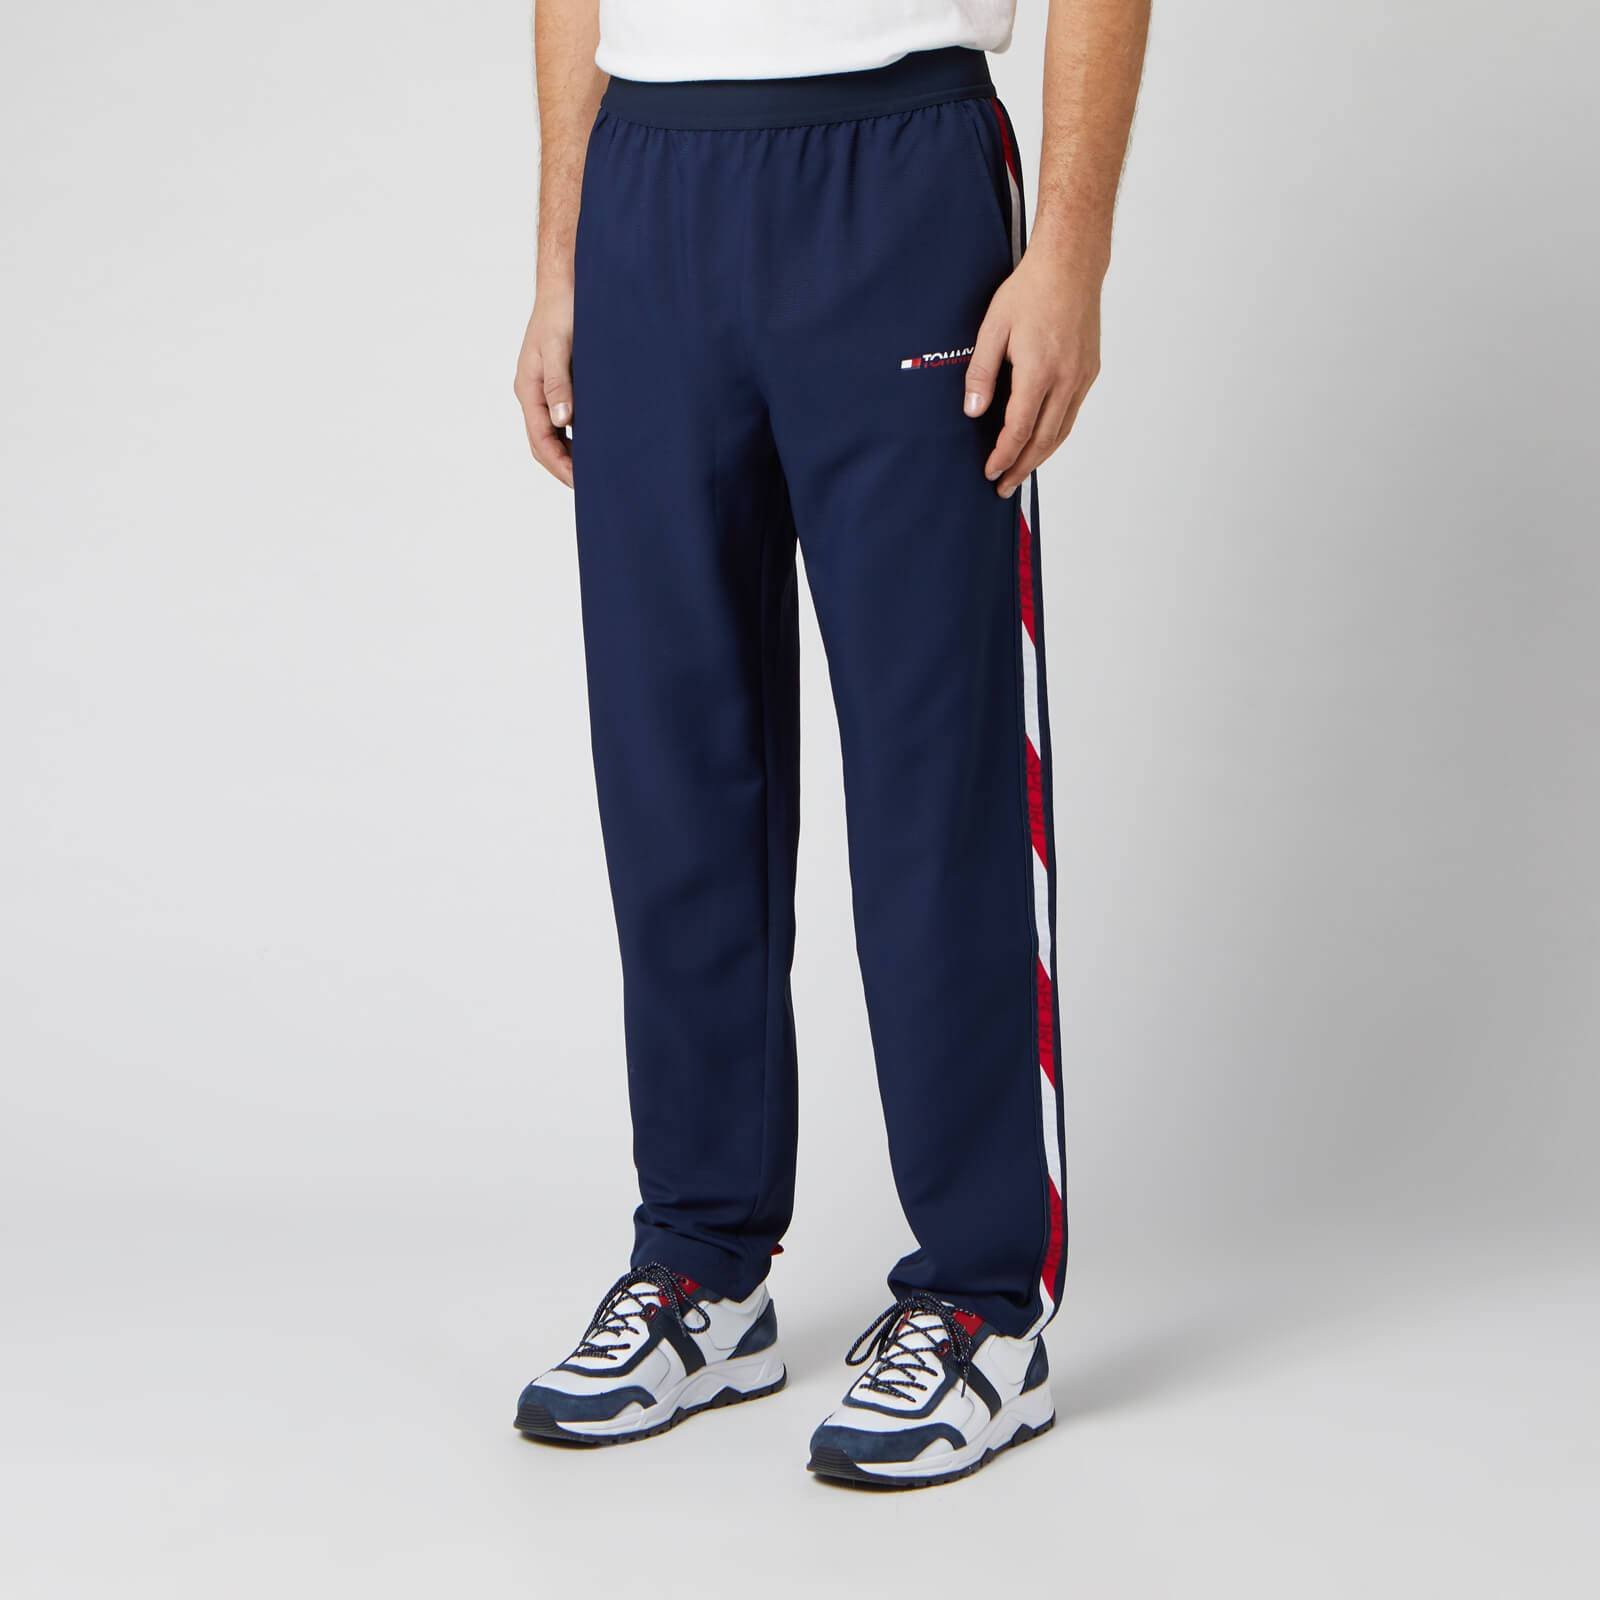 Tommy Hilfiger Sport Men's Woven Tape Pants - Sport Navy - M